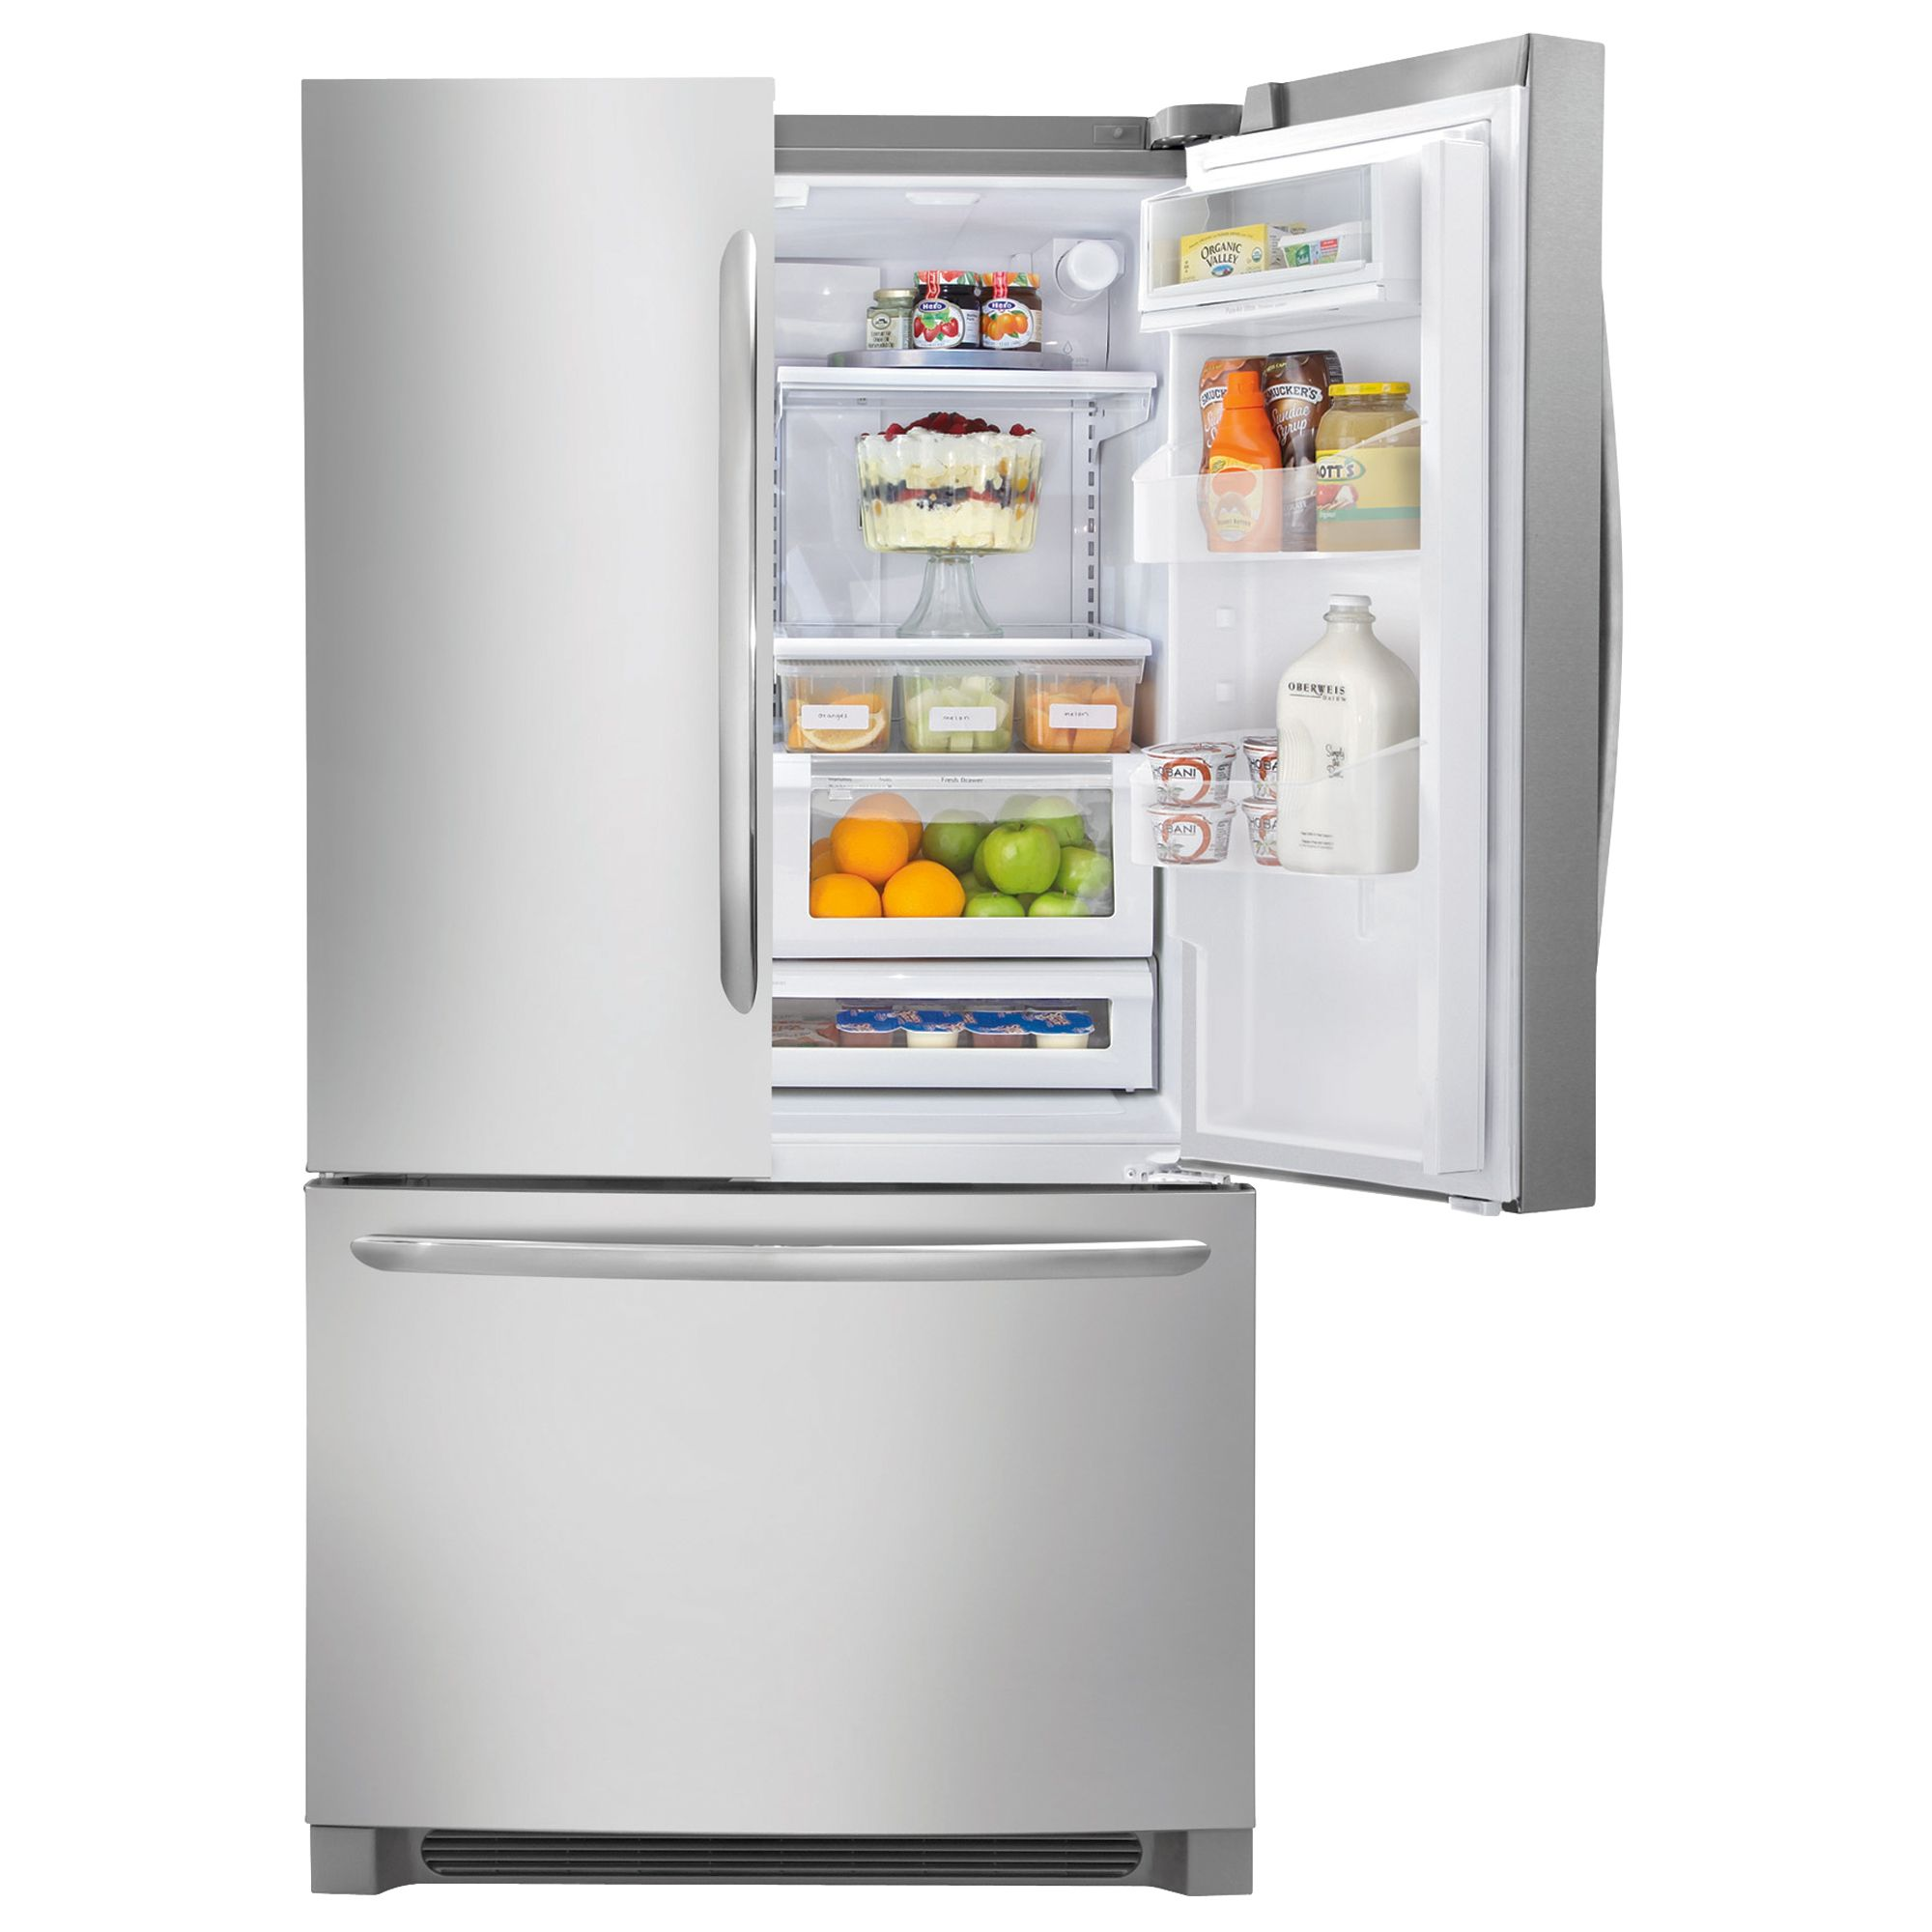 Frigidaire Gallery 25.8 cu. ft. French-Door Bottom-Freezer Refrigerator